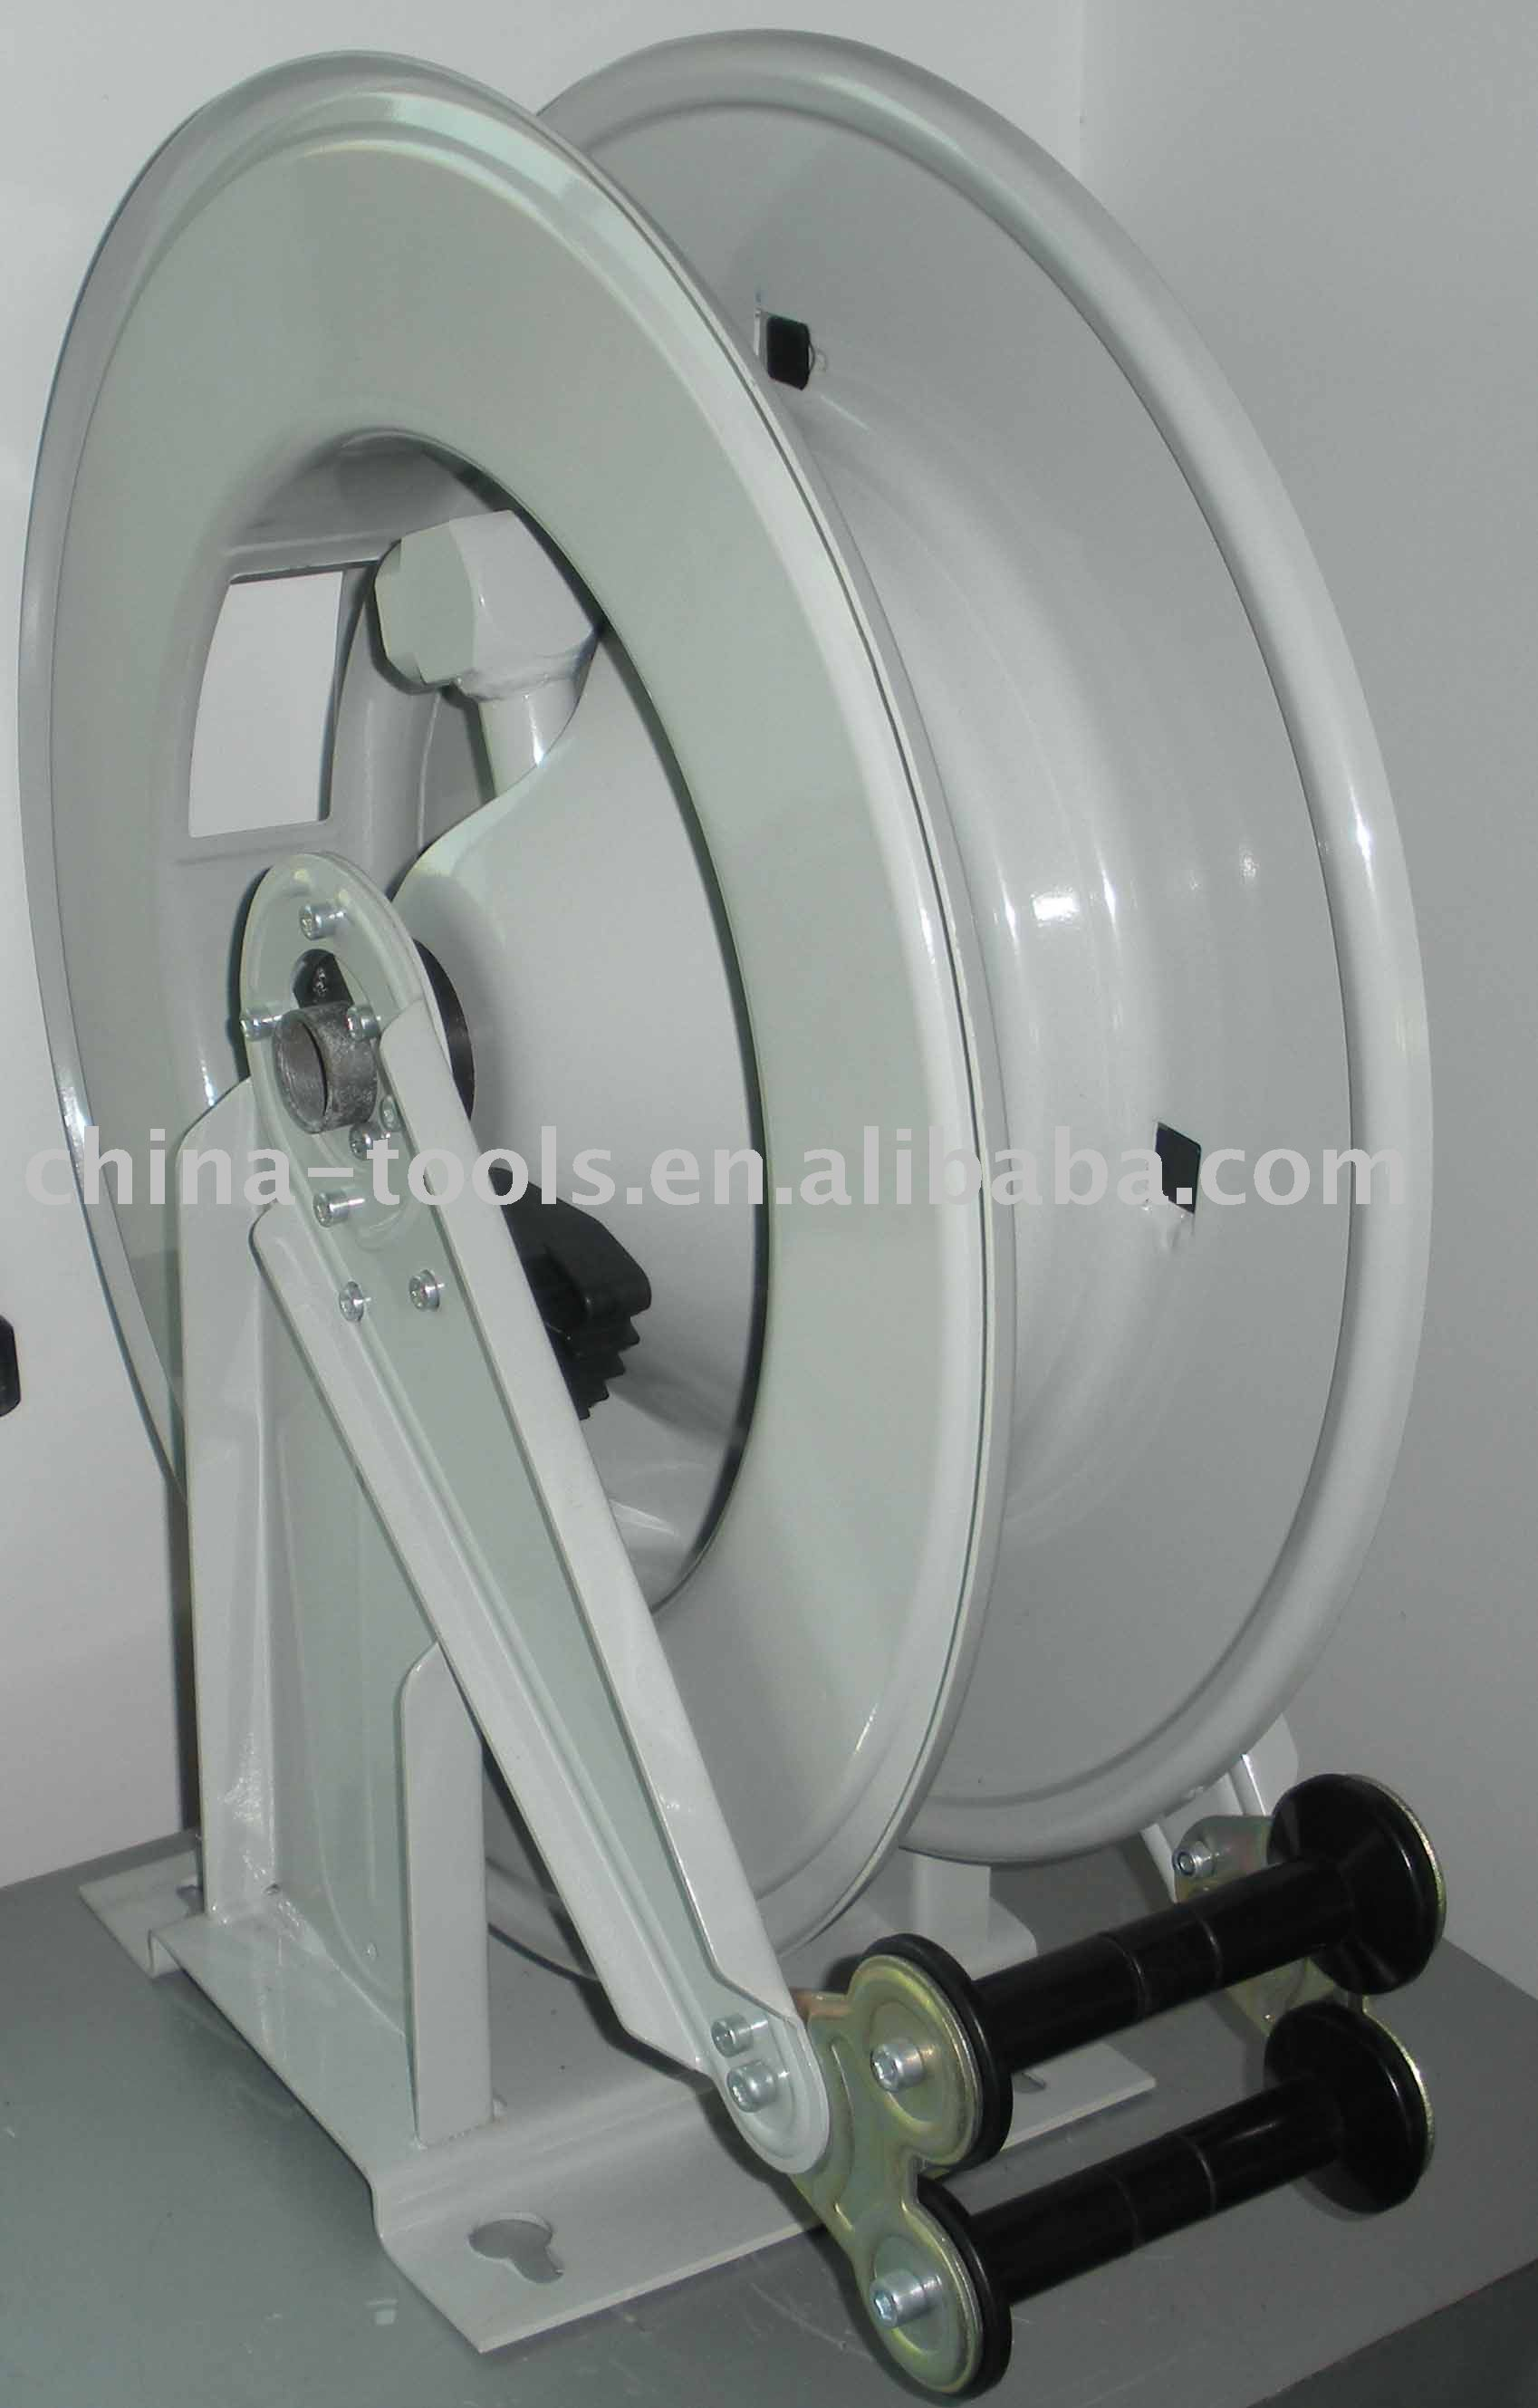 new  Retractable Hydraulic Oil Hose Reel (empty Reel) - Buy Oil Hose ReelGrease Hose ReelHigh Pressure Reel Product on Alibaba.com & new